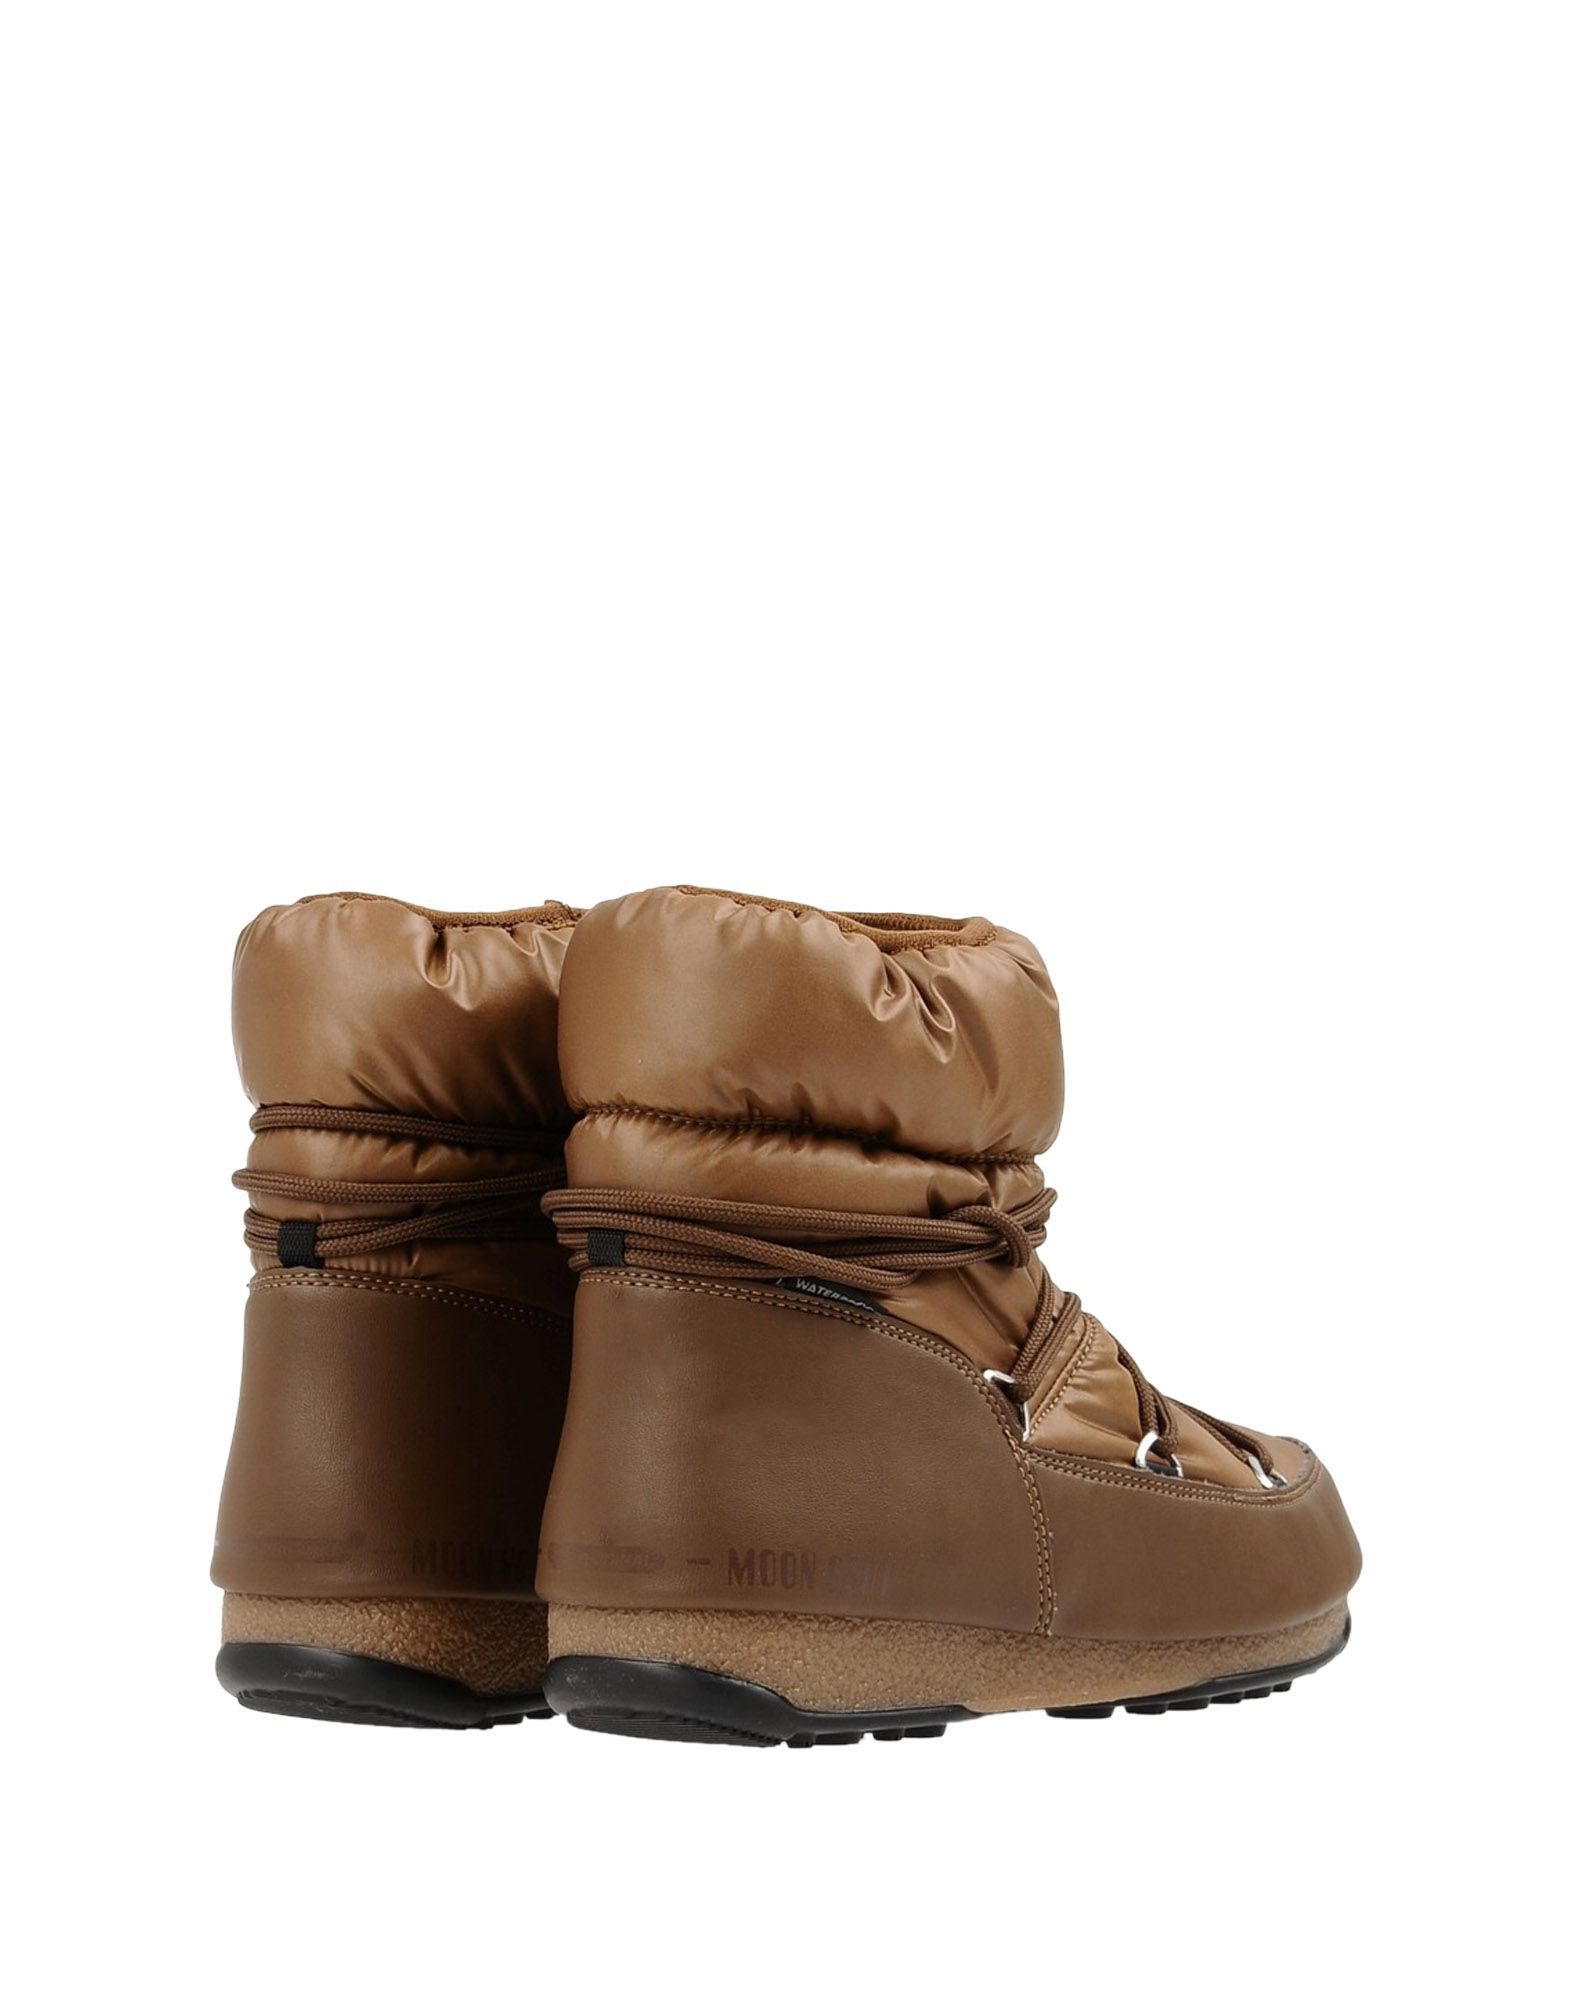 W.E. LOW NYLON WP - CHAUSSURES - BottinesMoon Boot pPeMgozqq